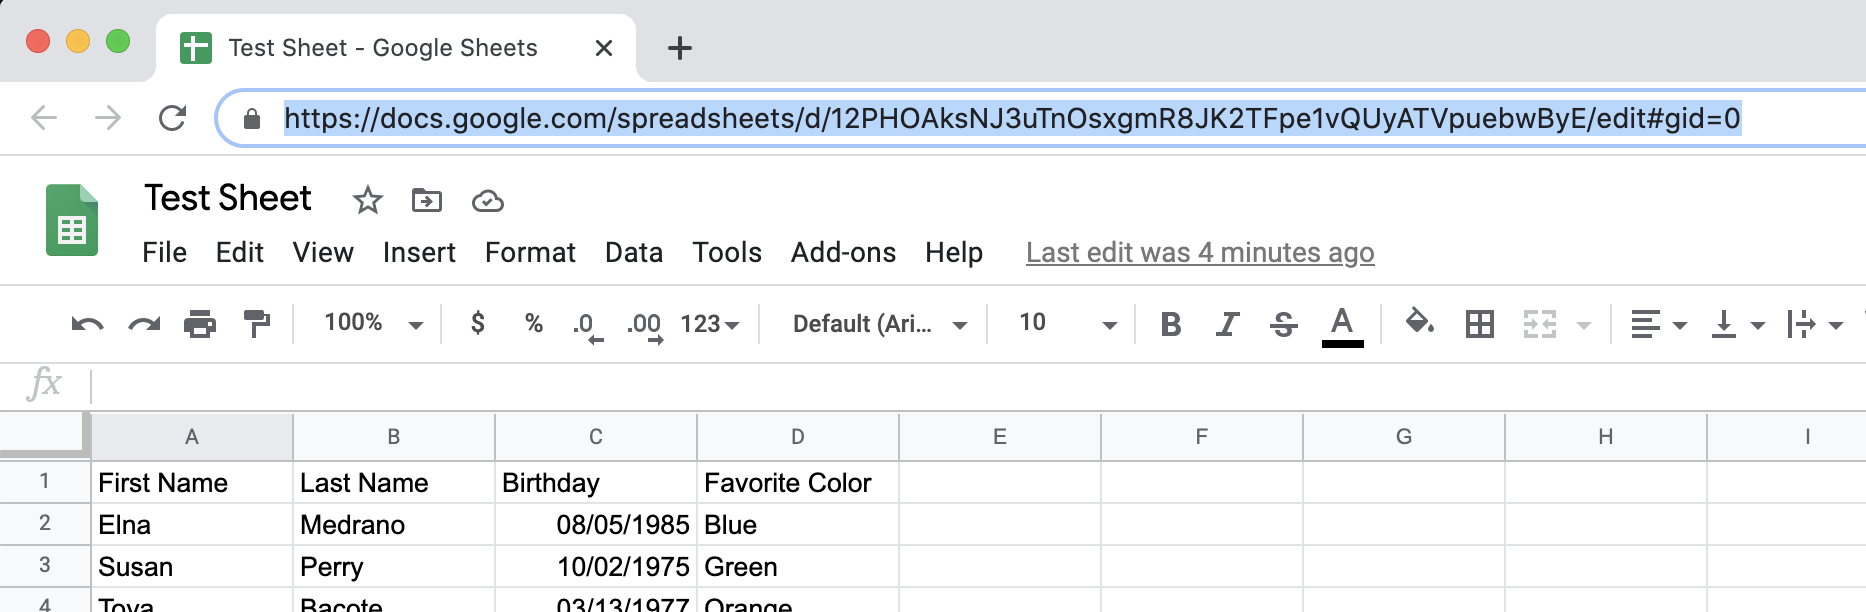 Find the Google Sheet url